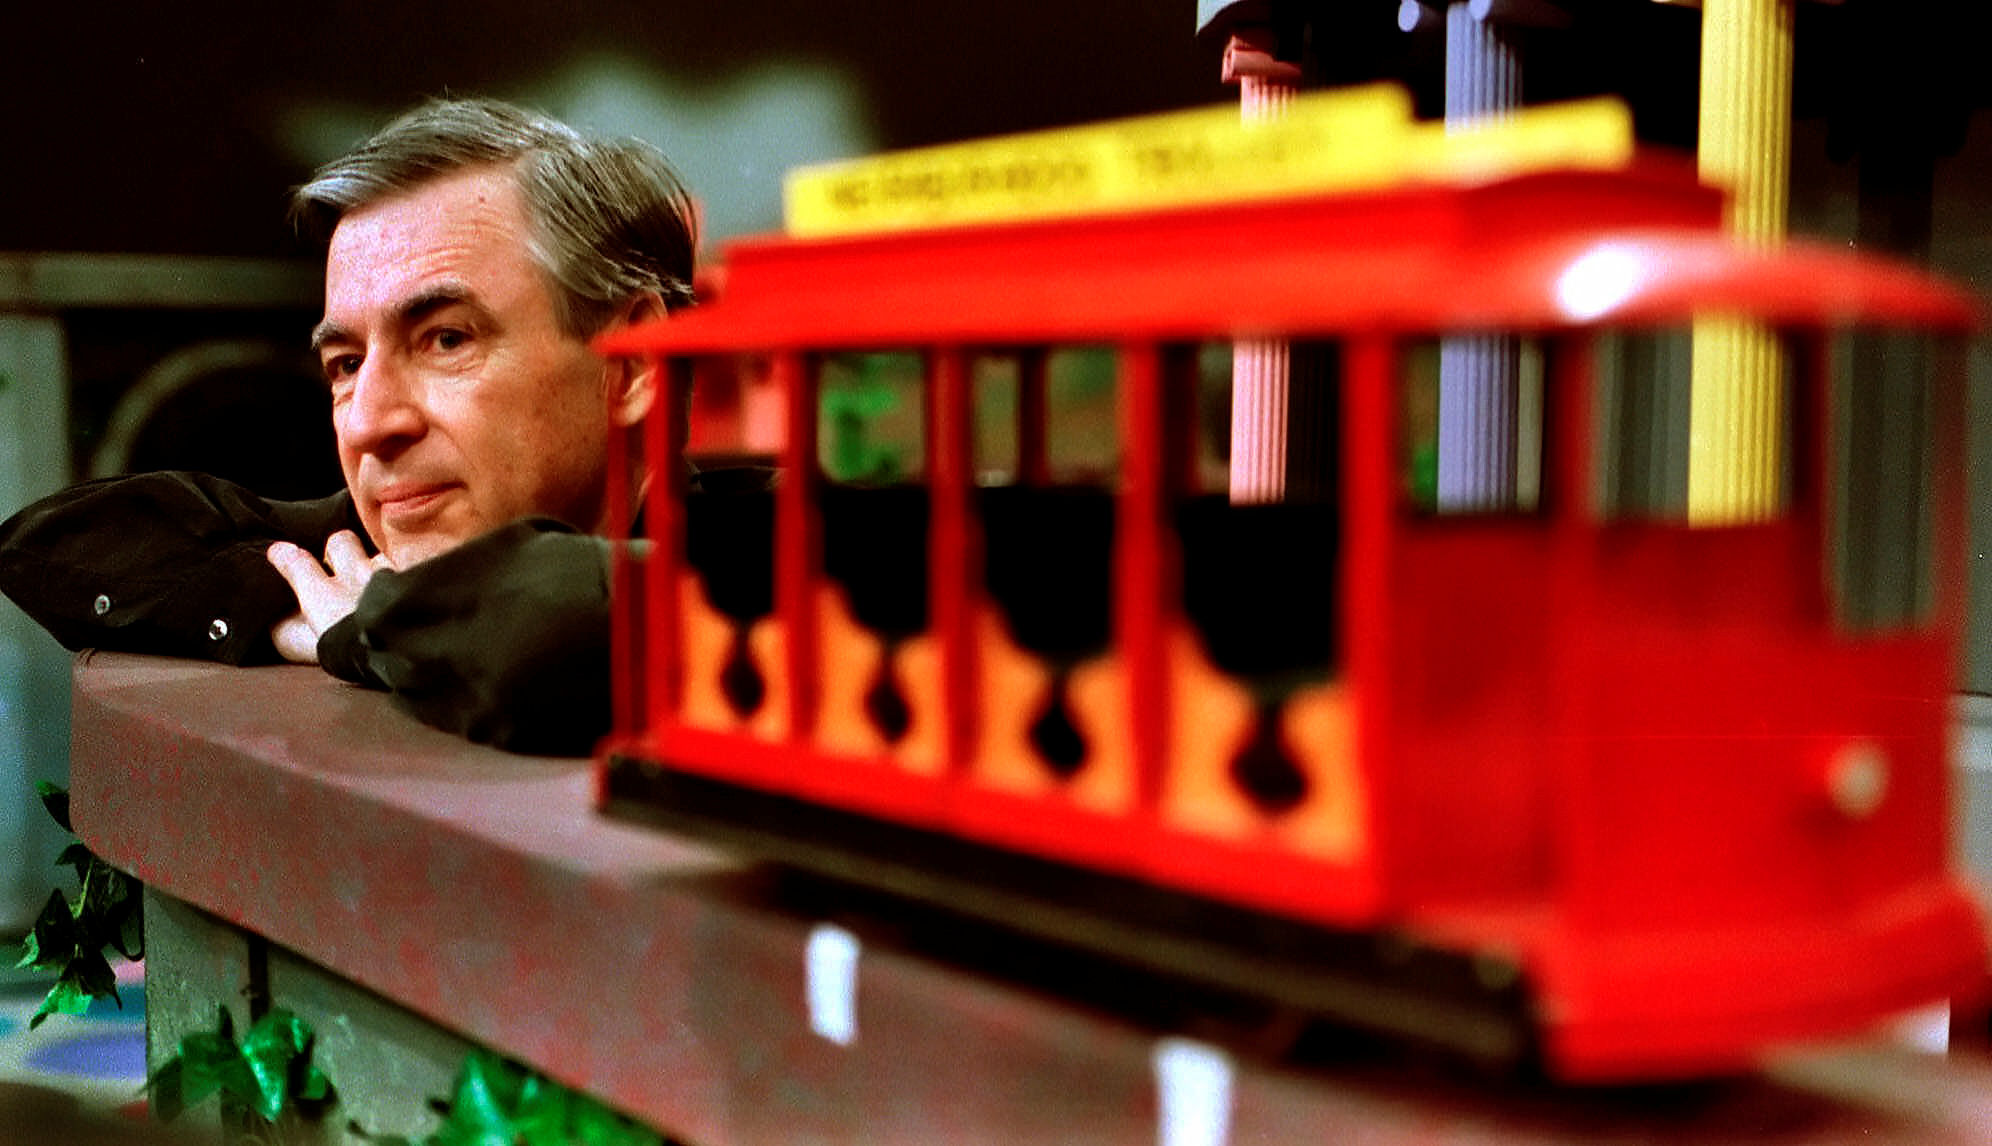 The 'radical' legacy of television's Mister Rogers - Washington Times